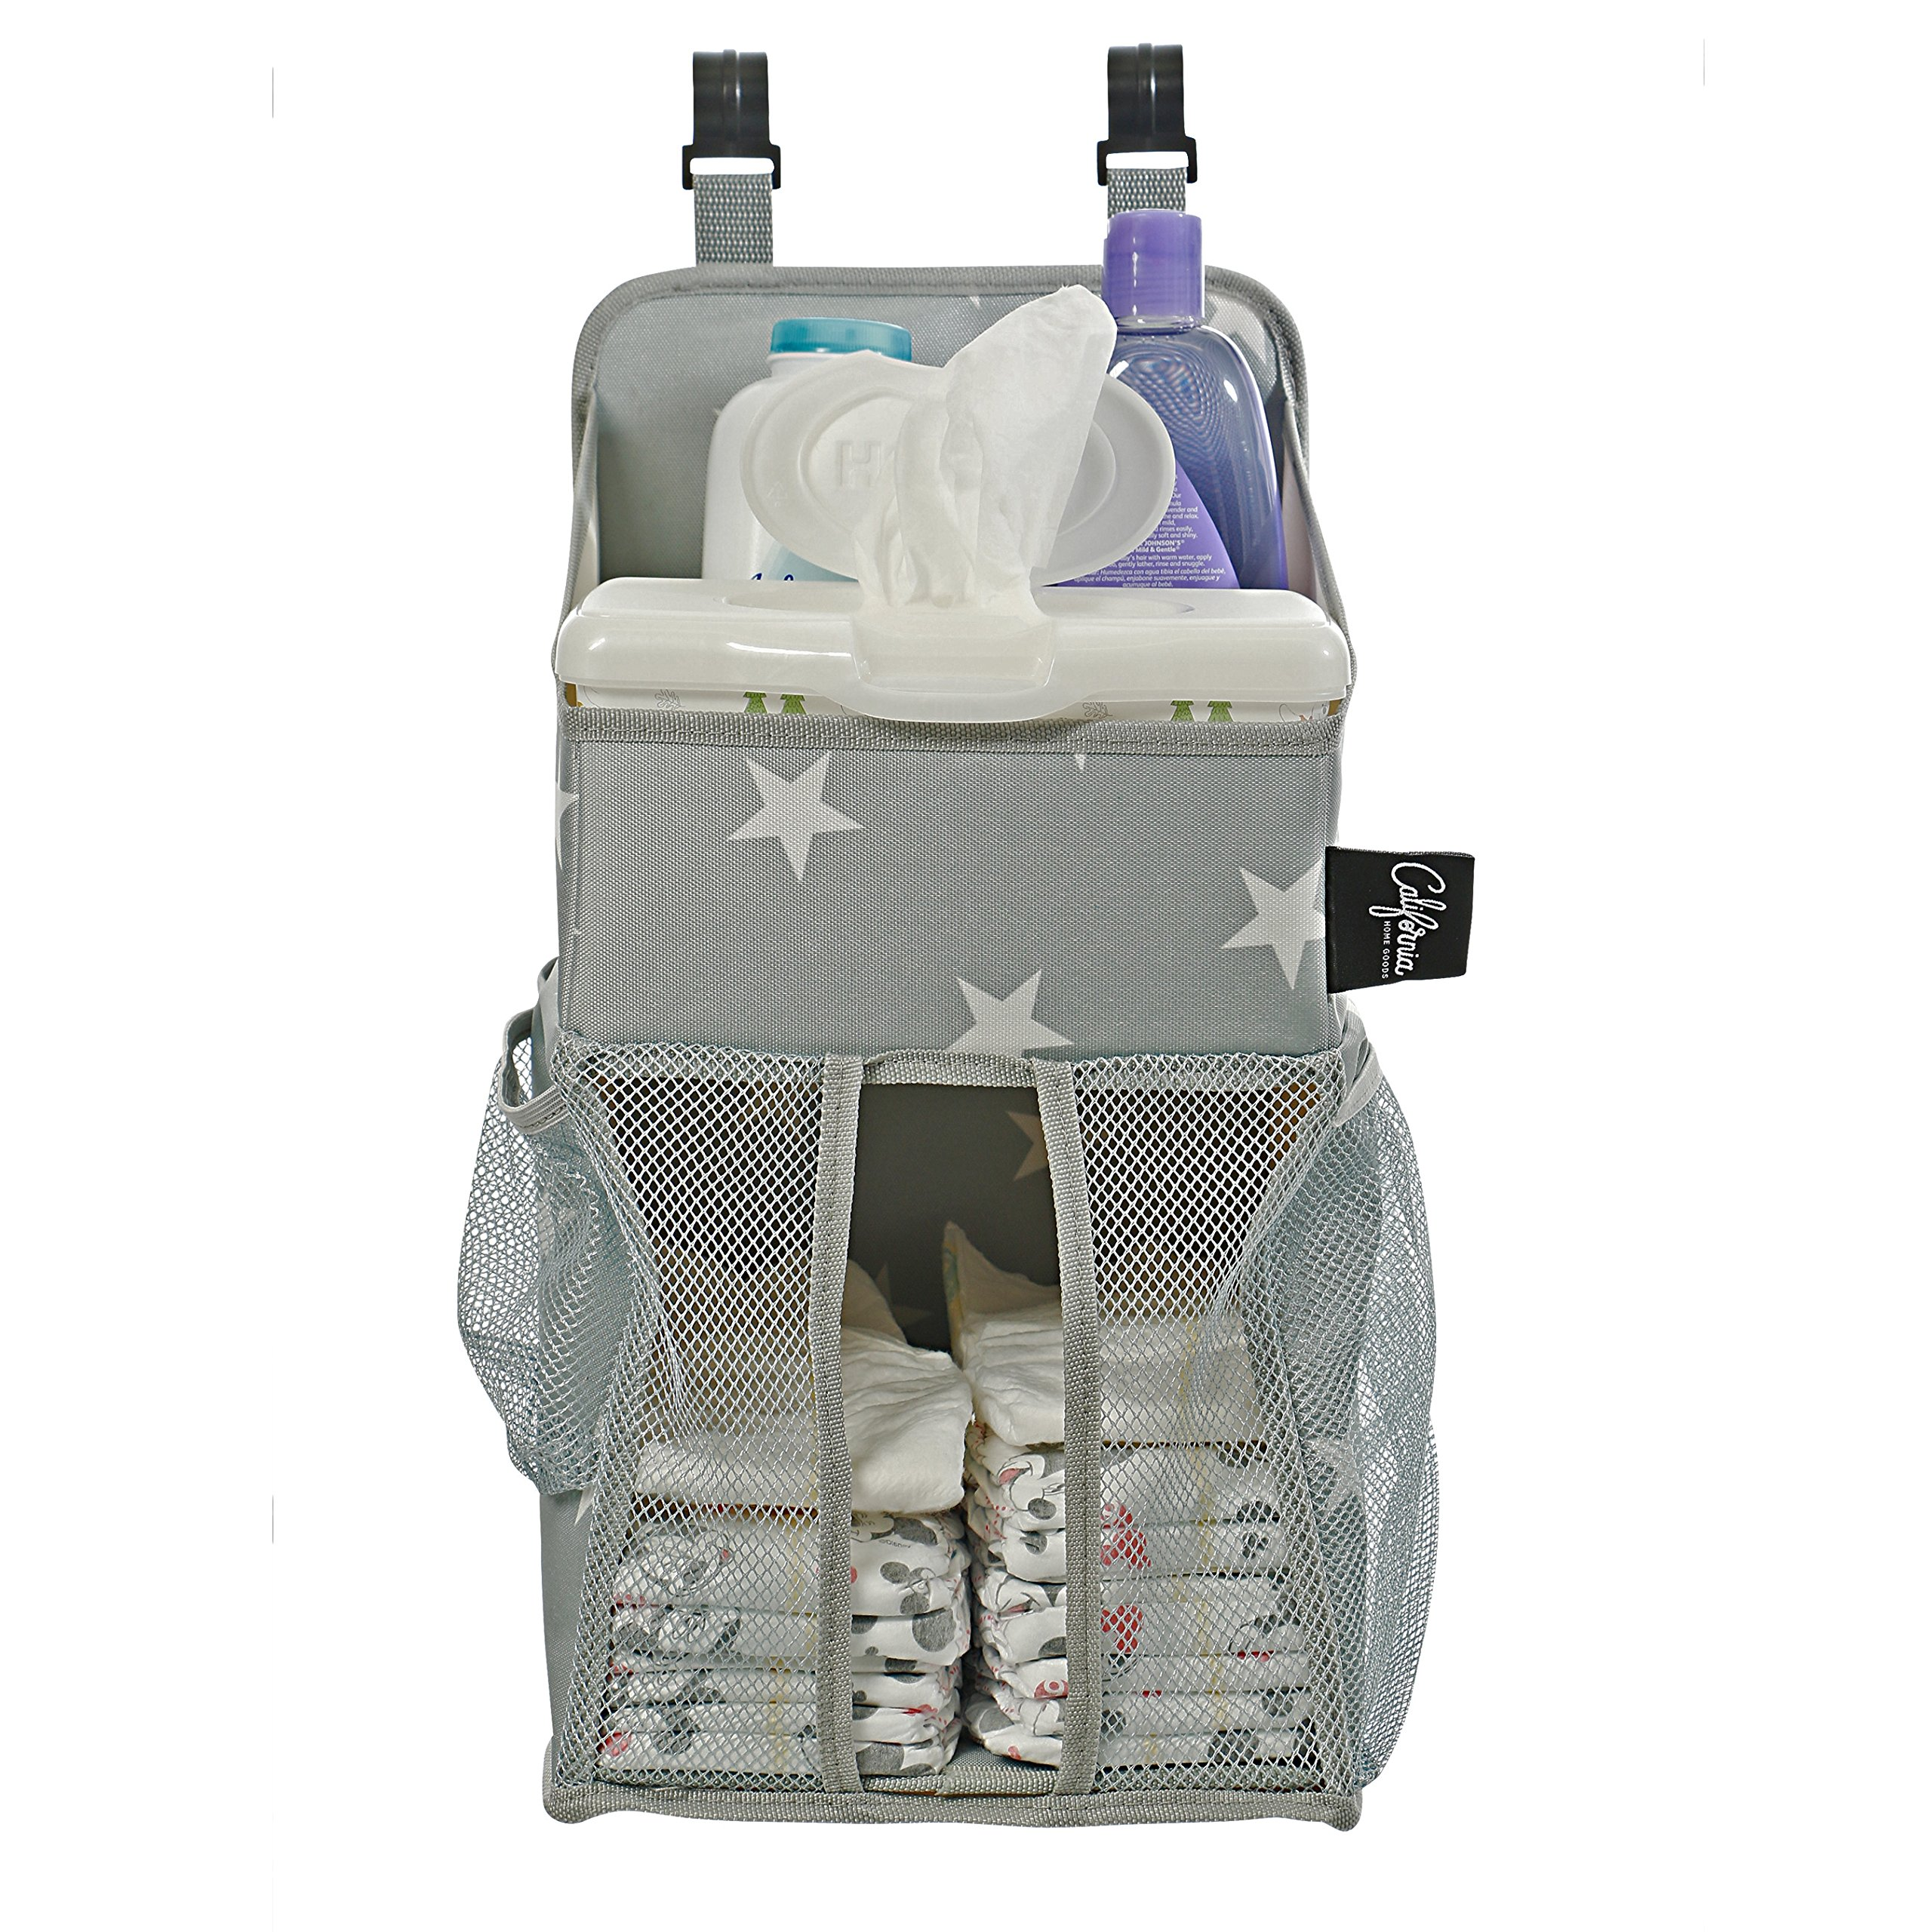 Playard Diaper Caddy and Nursery Organizer for Newborn Baby Essentials, Star Pattern, Grey & White, Baby Accessory Organizer by California Home Goods